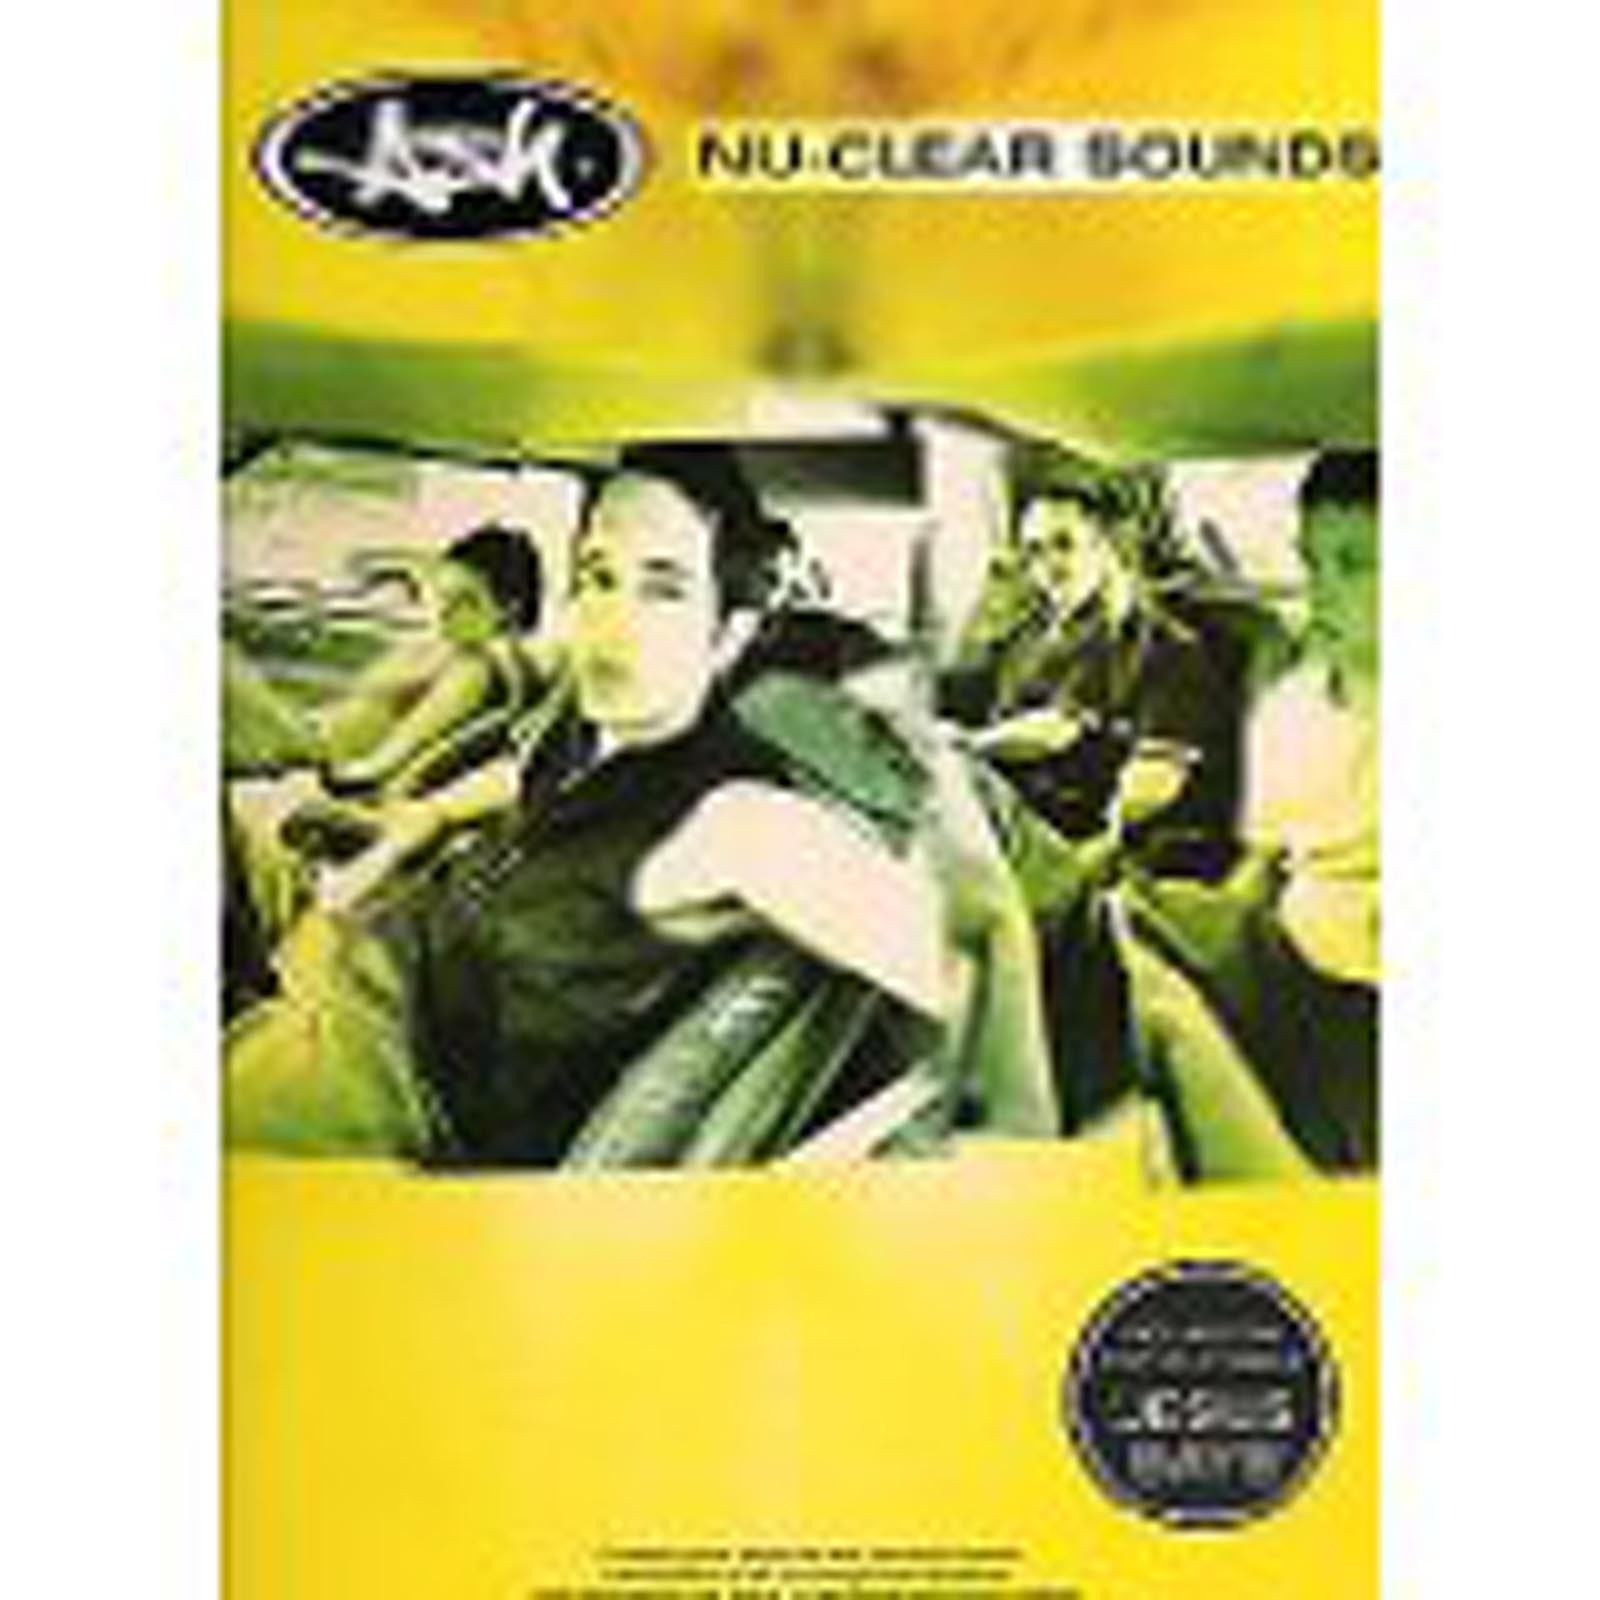 Ash Nu-Clear Sounds Complete Guitar TAB Sheet Music Book S03